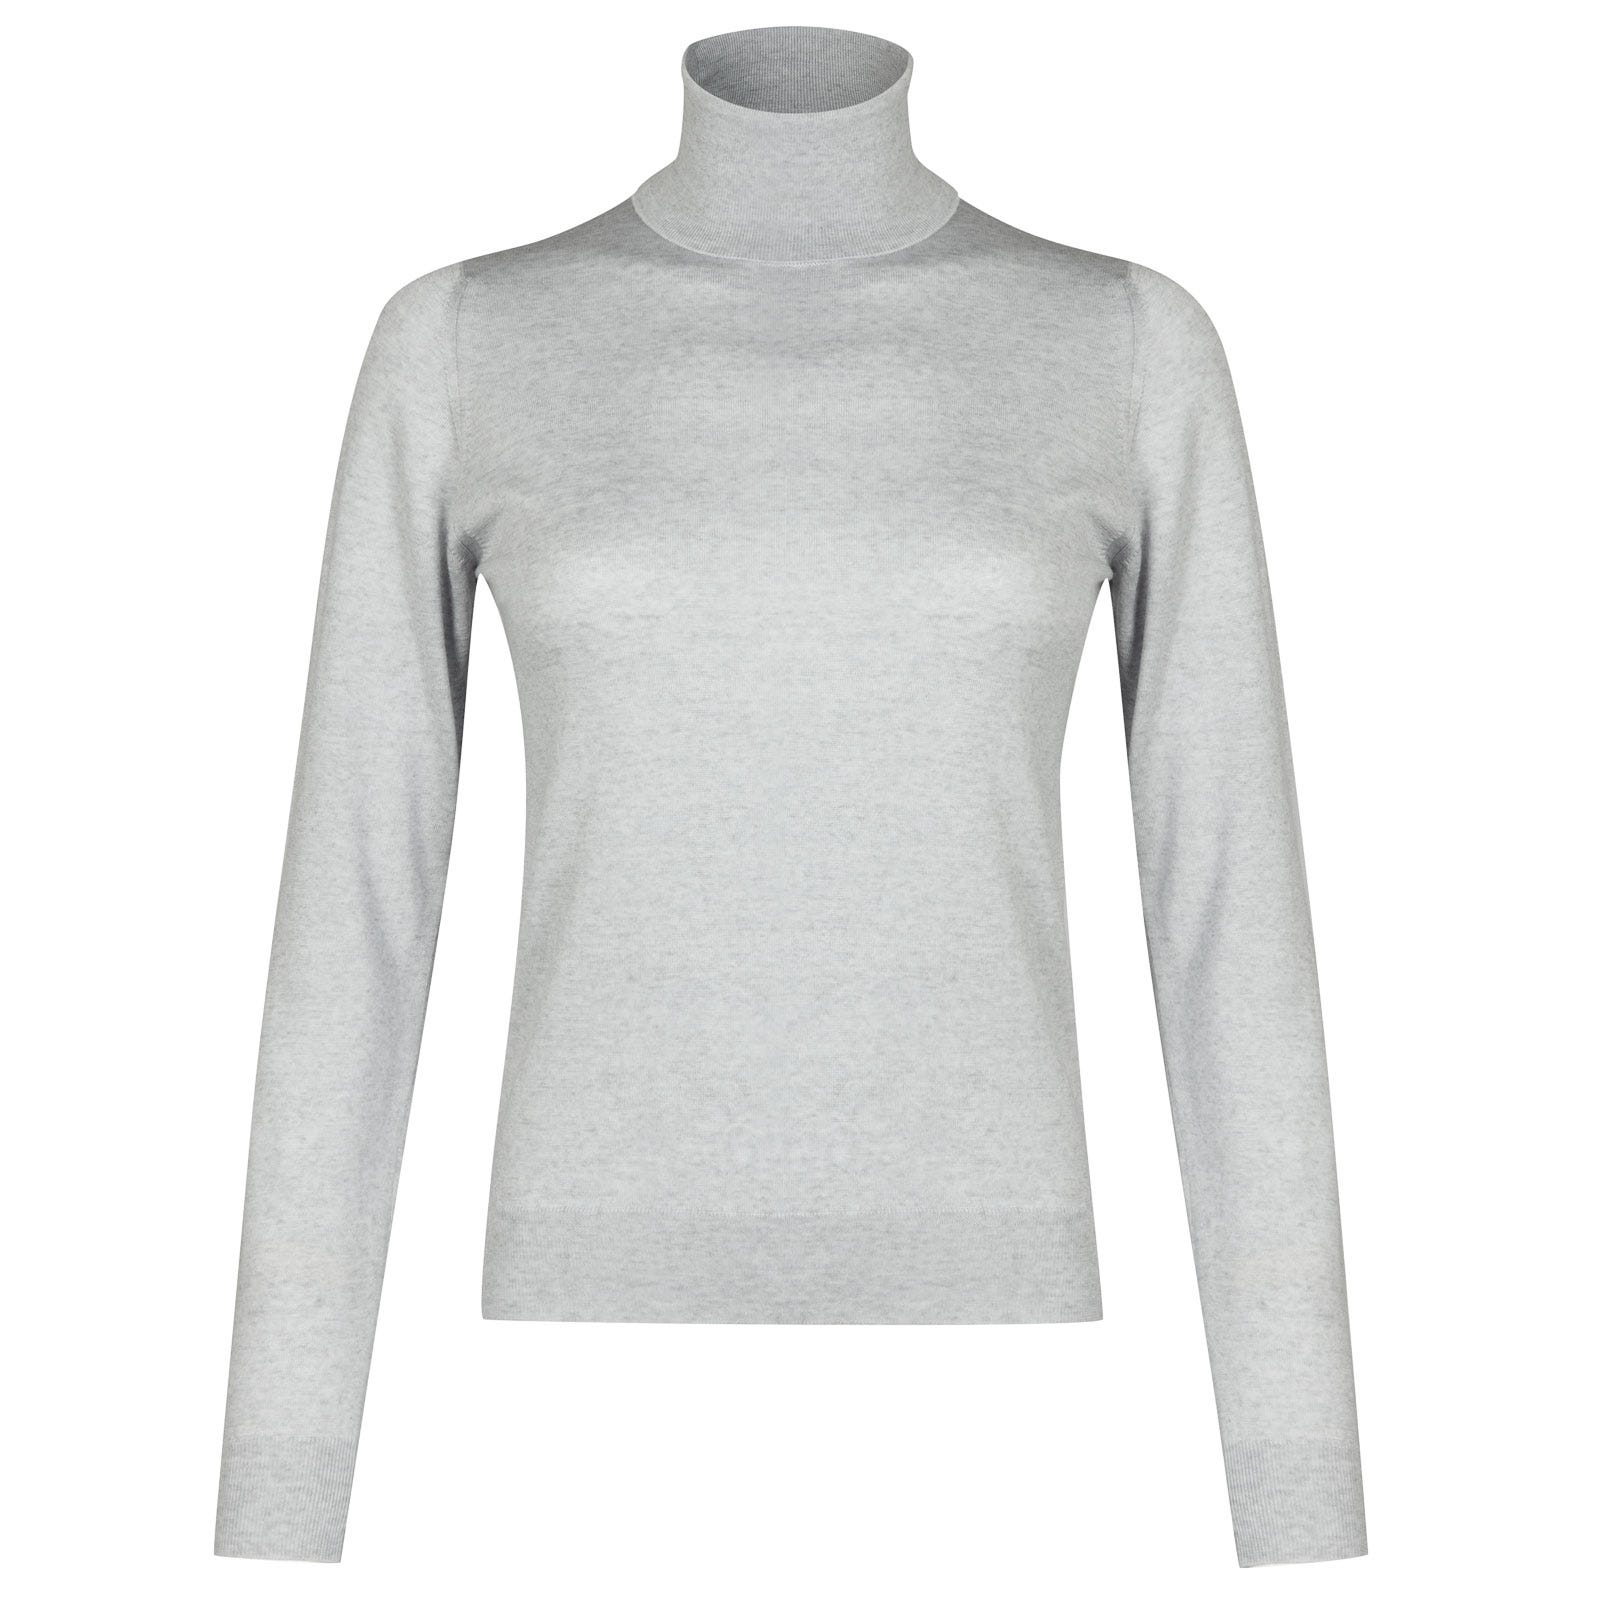 John Smedley siena Merino Wool Sweater in Bardot Grey-S